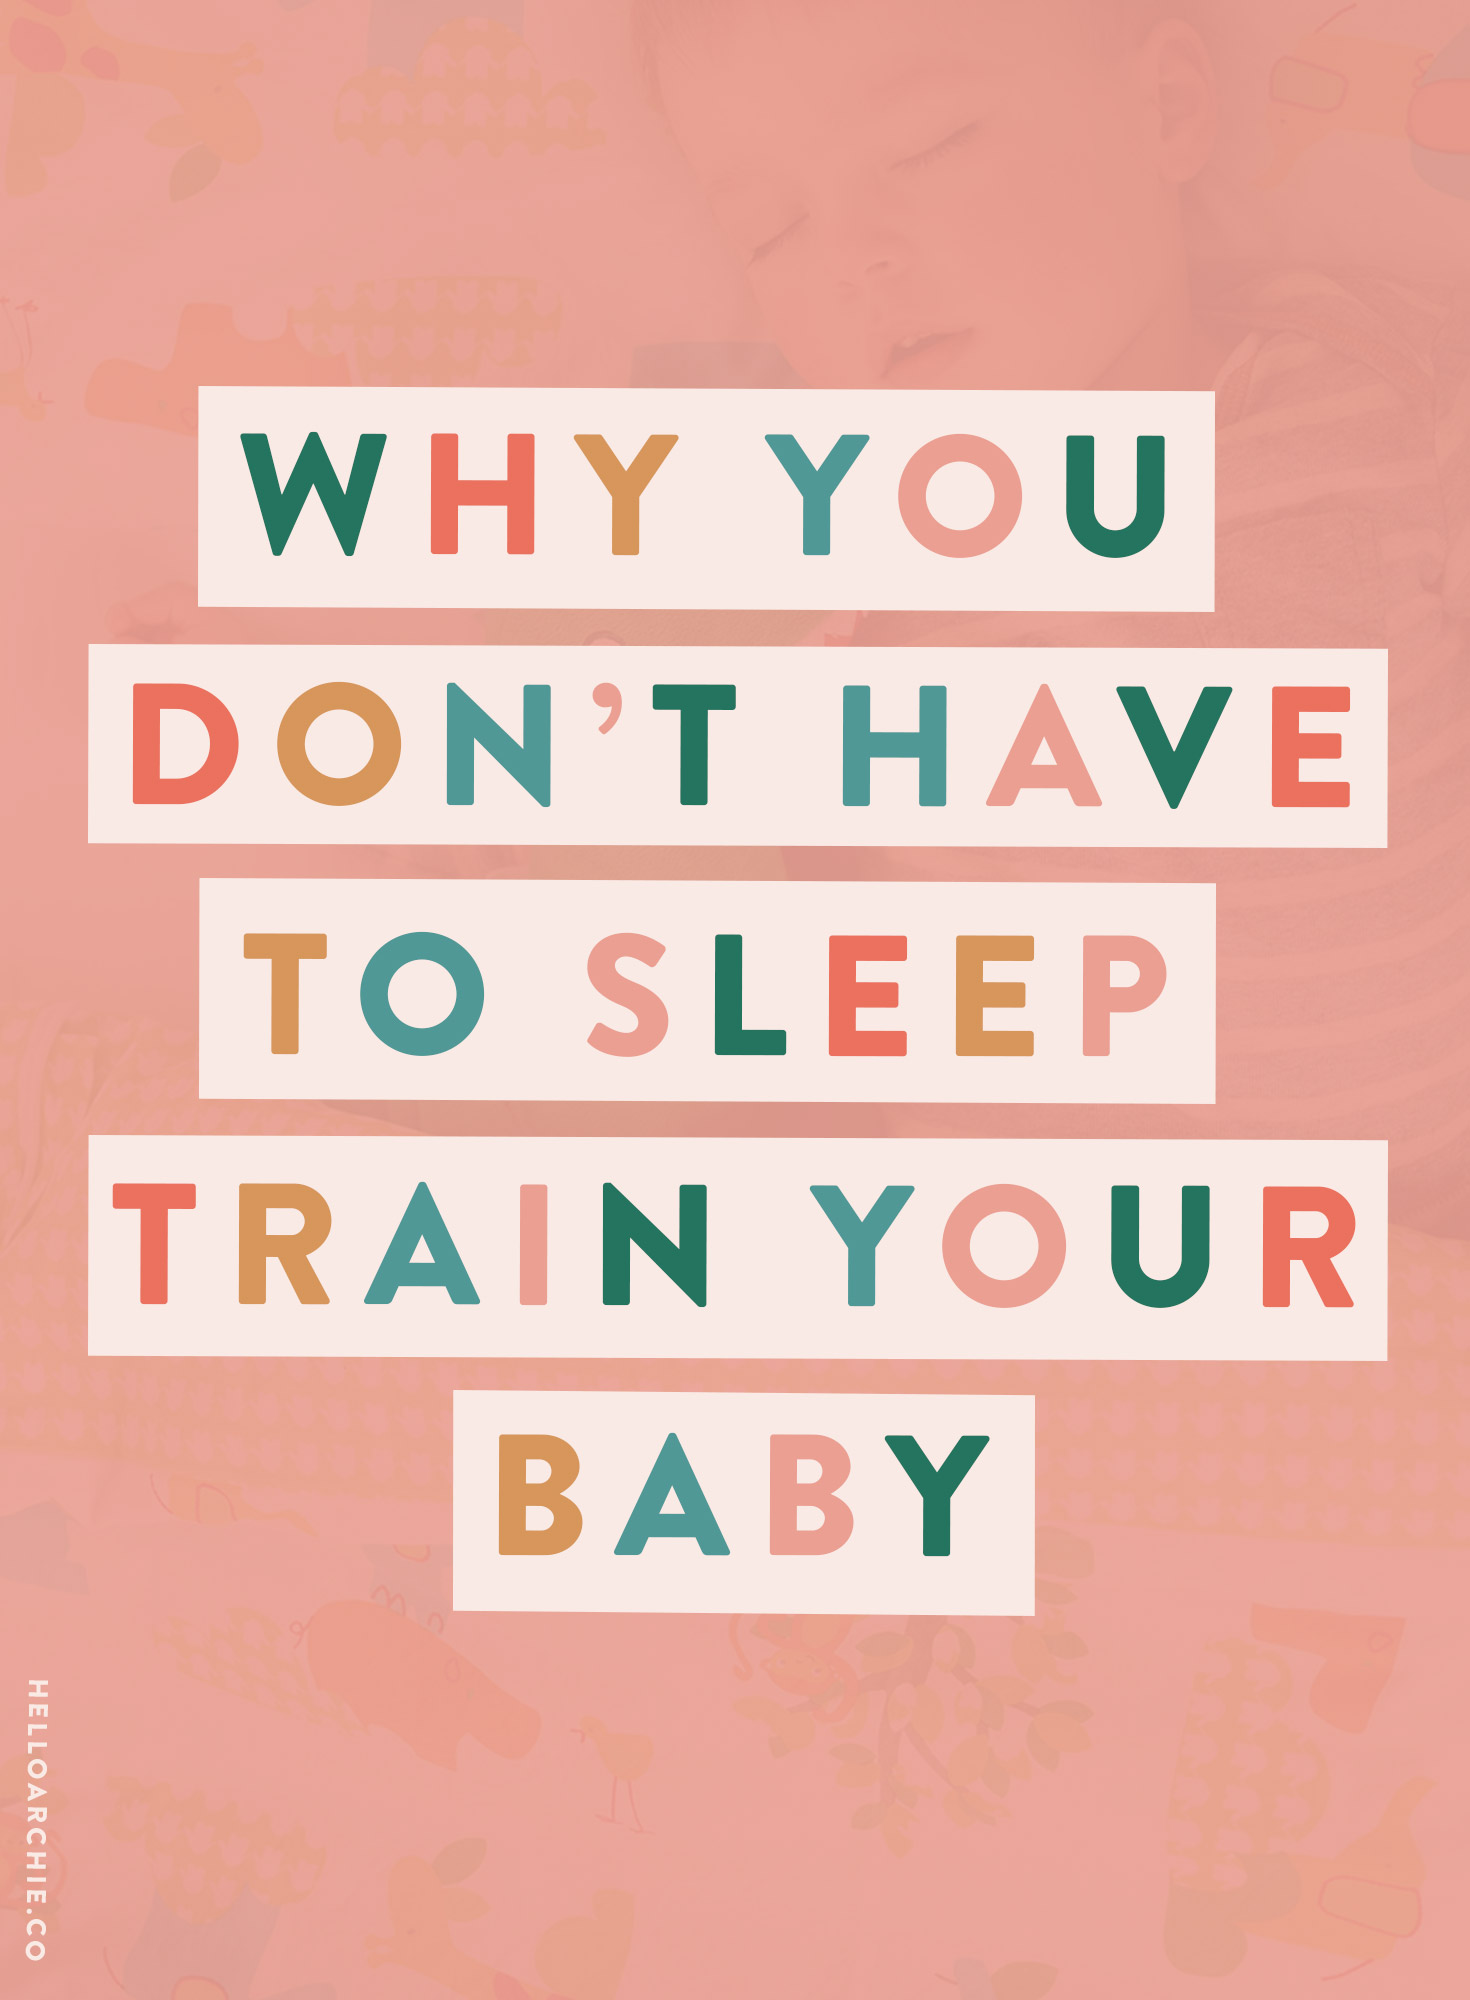 I relished the first 3 months because I didn't have to do anything other than cuddle and breastfeed and cuddle some more. I nursed on demand, I [safely] co-slept and I loved every single second. Why did that have to change?